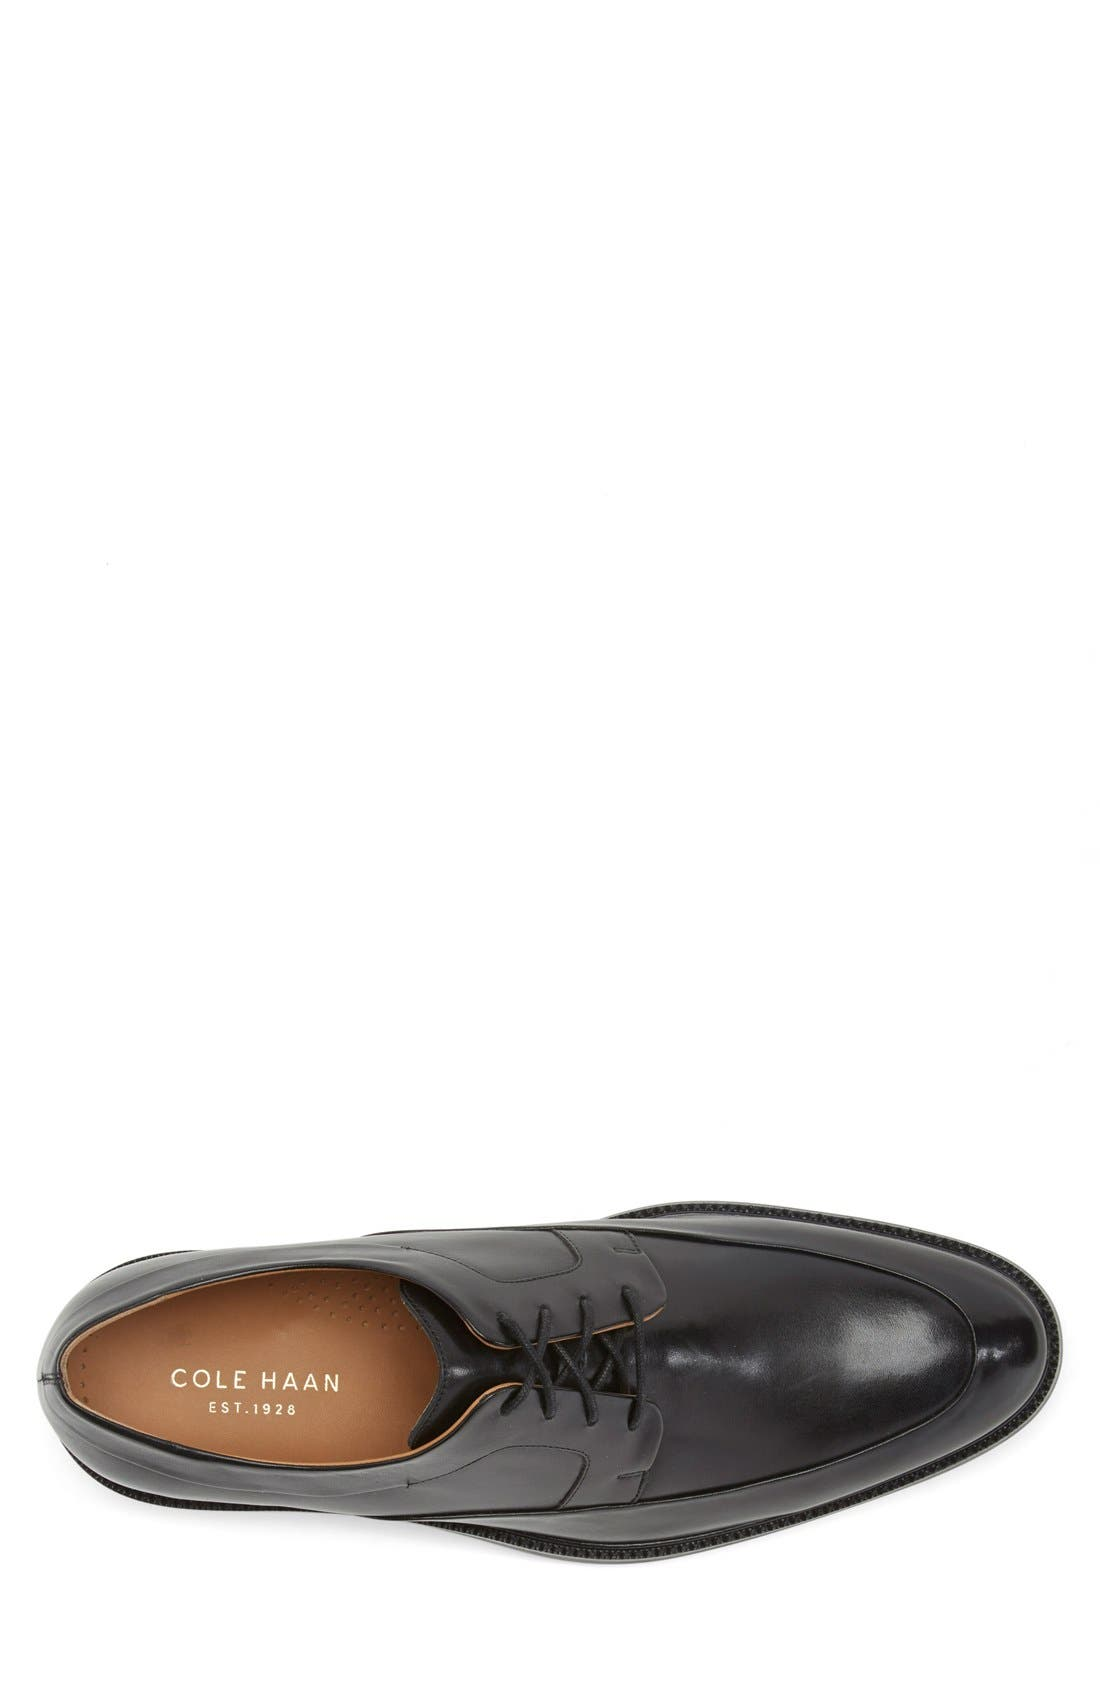 COLE HAAN, 'Warren' Apron Toe Derby, Alternate thumbnail 6, color, BLACK LEATHER